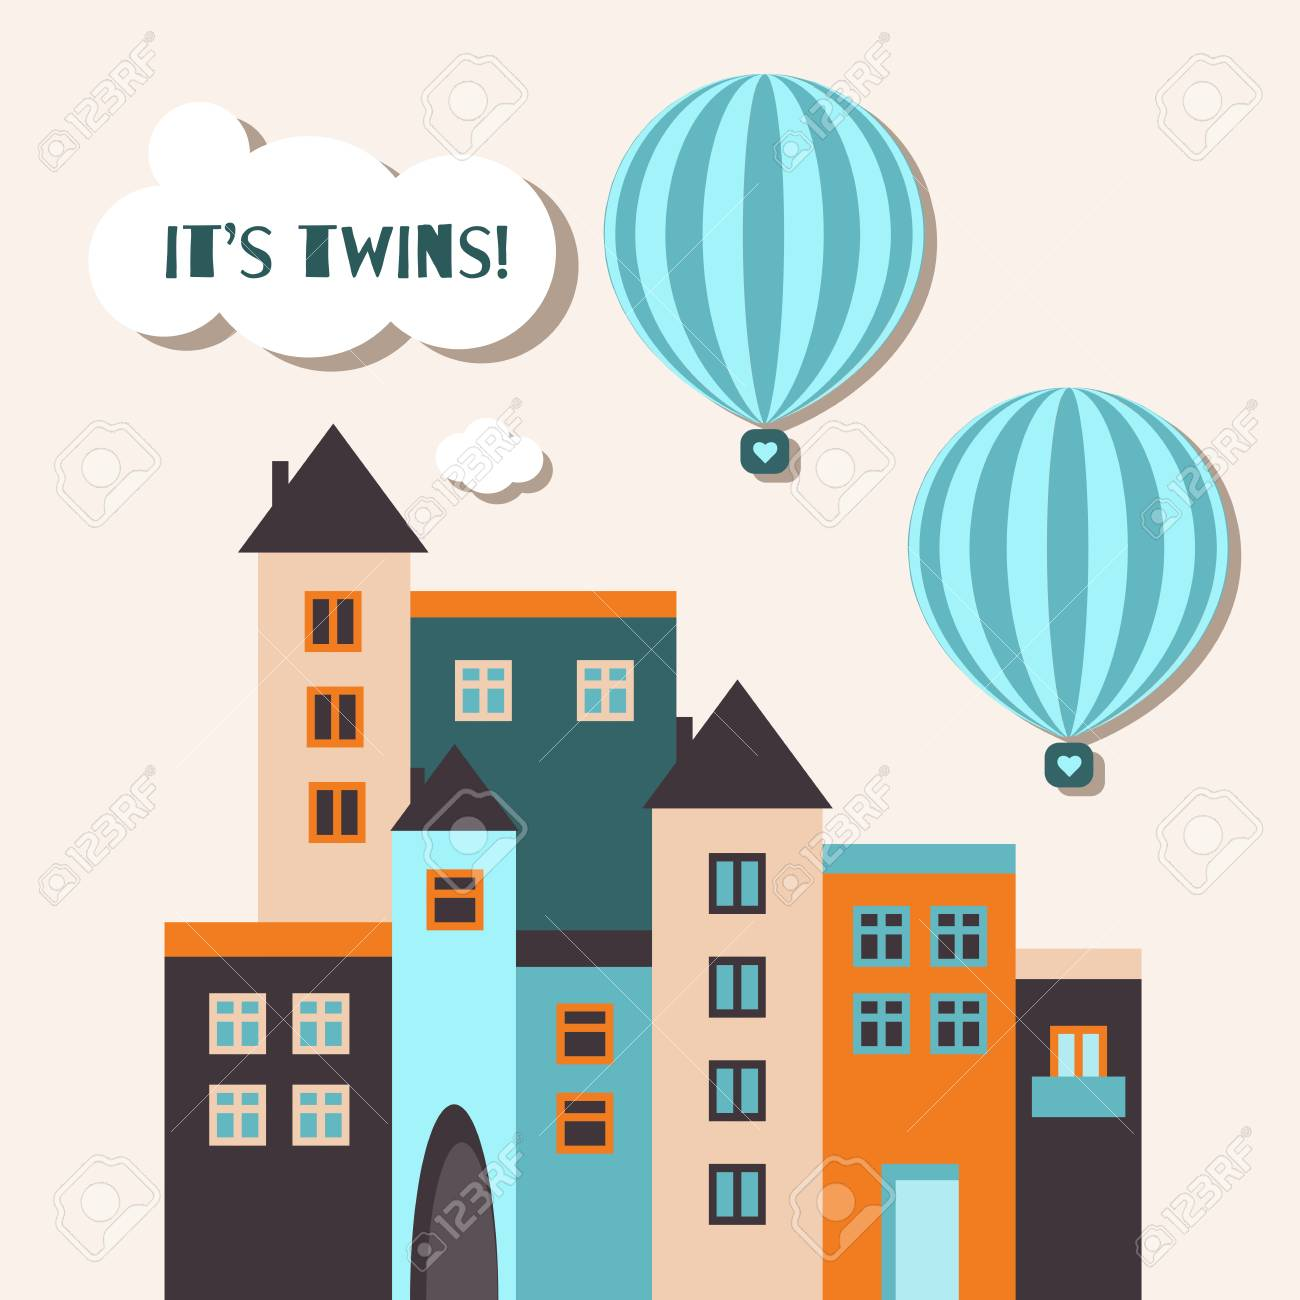 It S Twins Baby Shower Card Twin Boys With Hot Air Balloons Royalty Free Cliparts Vectors And Stock Illustration Image 118200435